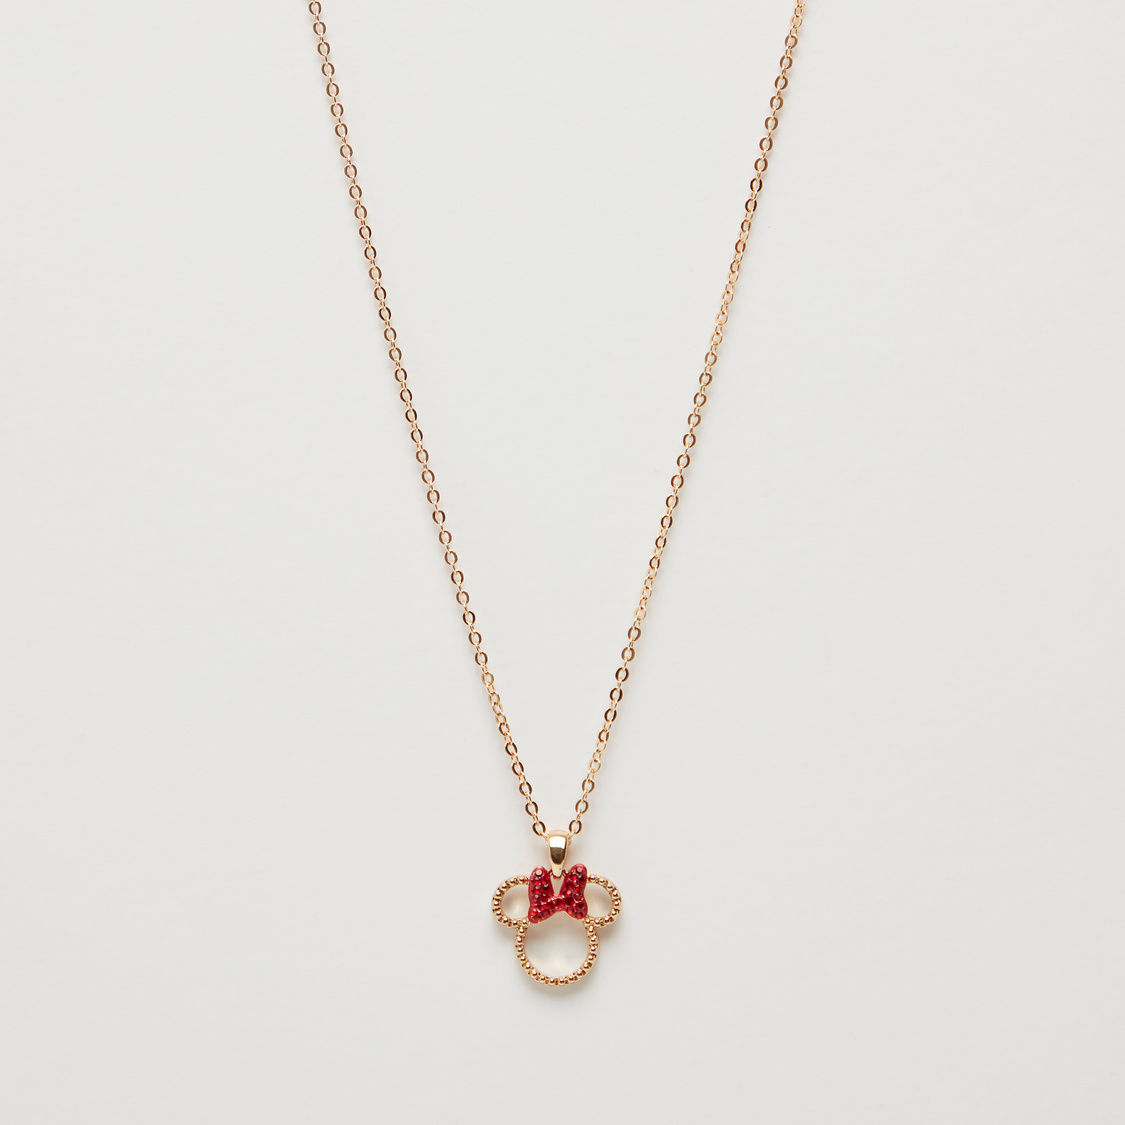 Minnie Mouse Pendant Necklace with Lobster Clasp